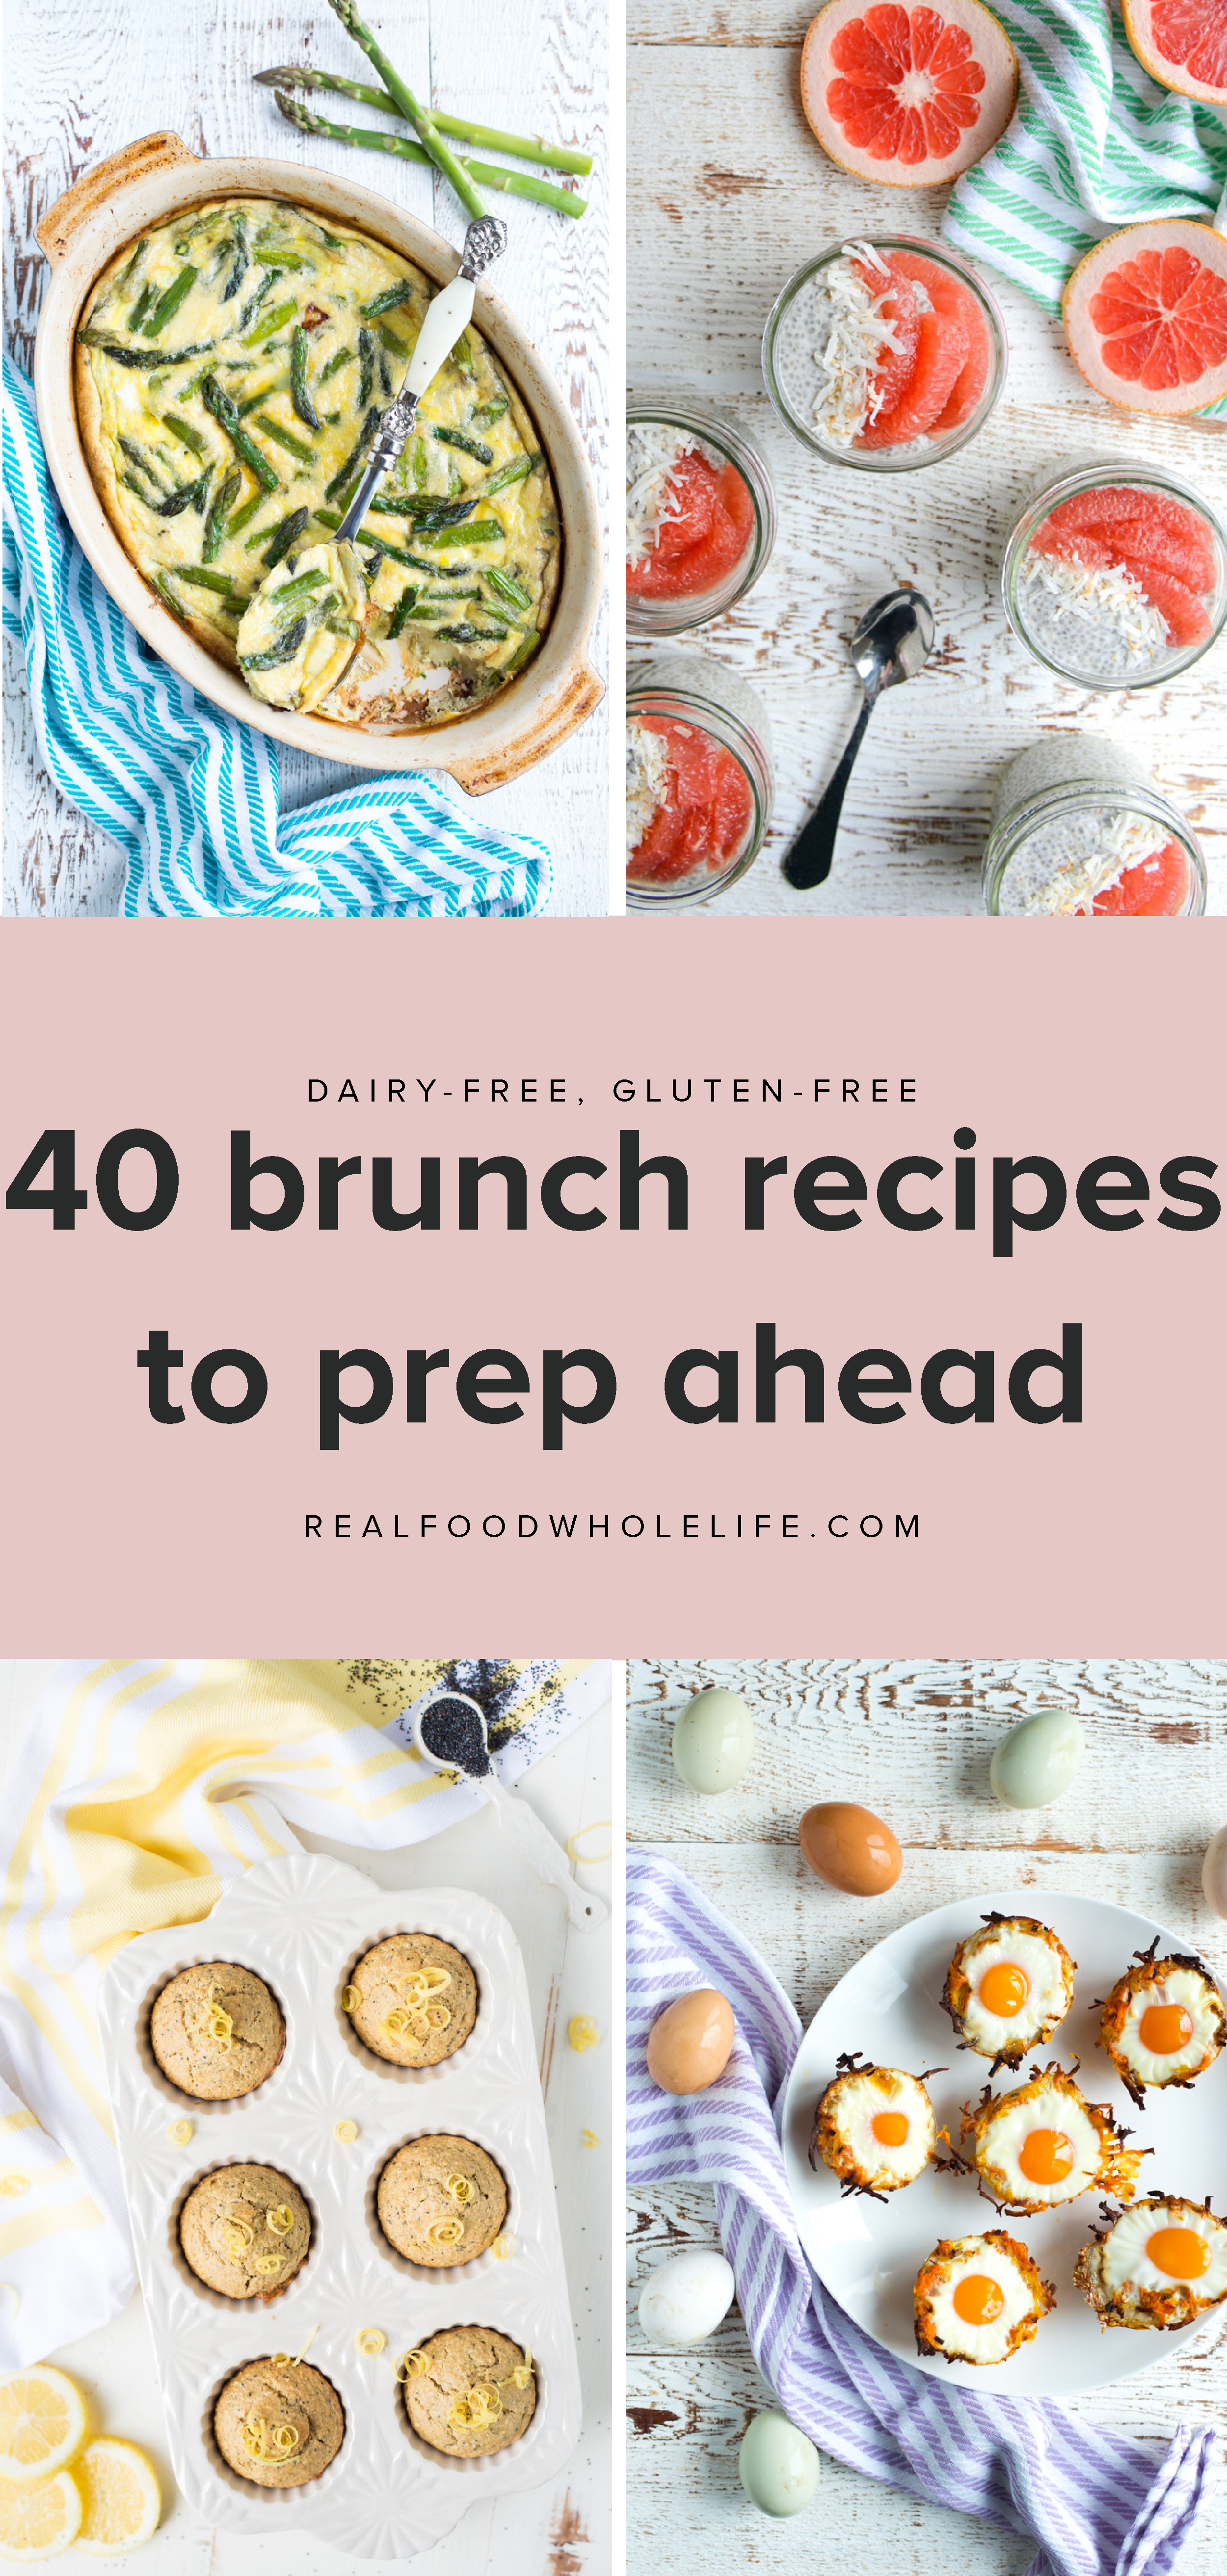 Looking for simple, healthy, make-ahead brunch recipes? Here's a collection of easy, healthy, totally delicious recipes perfect for your next brunch. #realfoodwholeliferecipe #brunchrecipes #mealprepideas #mealplanideas #makeaheadideas #dairyfreerecipes #glutenfreerecipes